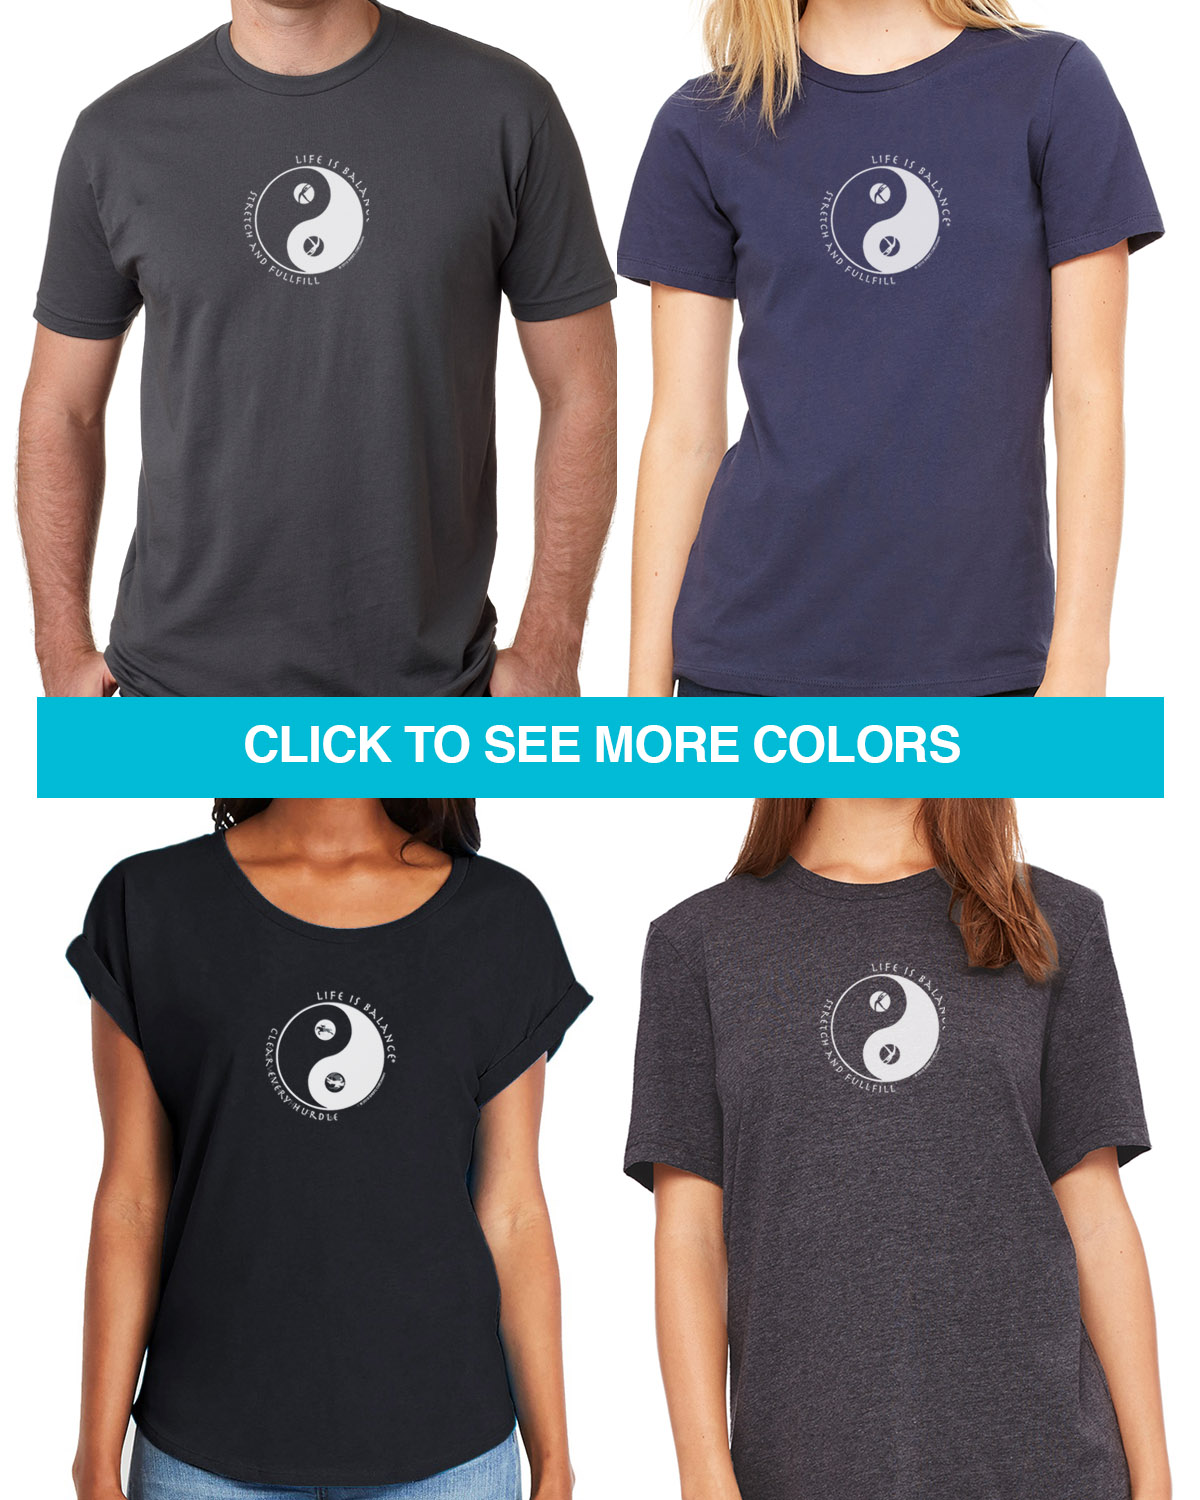 Exercise & Fitness short sleeve T-shirts for Men and Women. Women's fitted styles and a unisex style for men and women